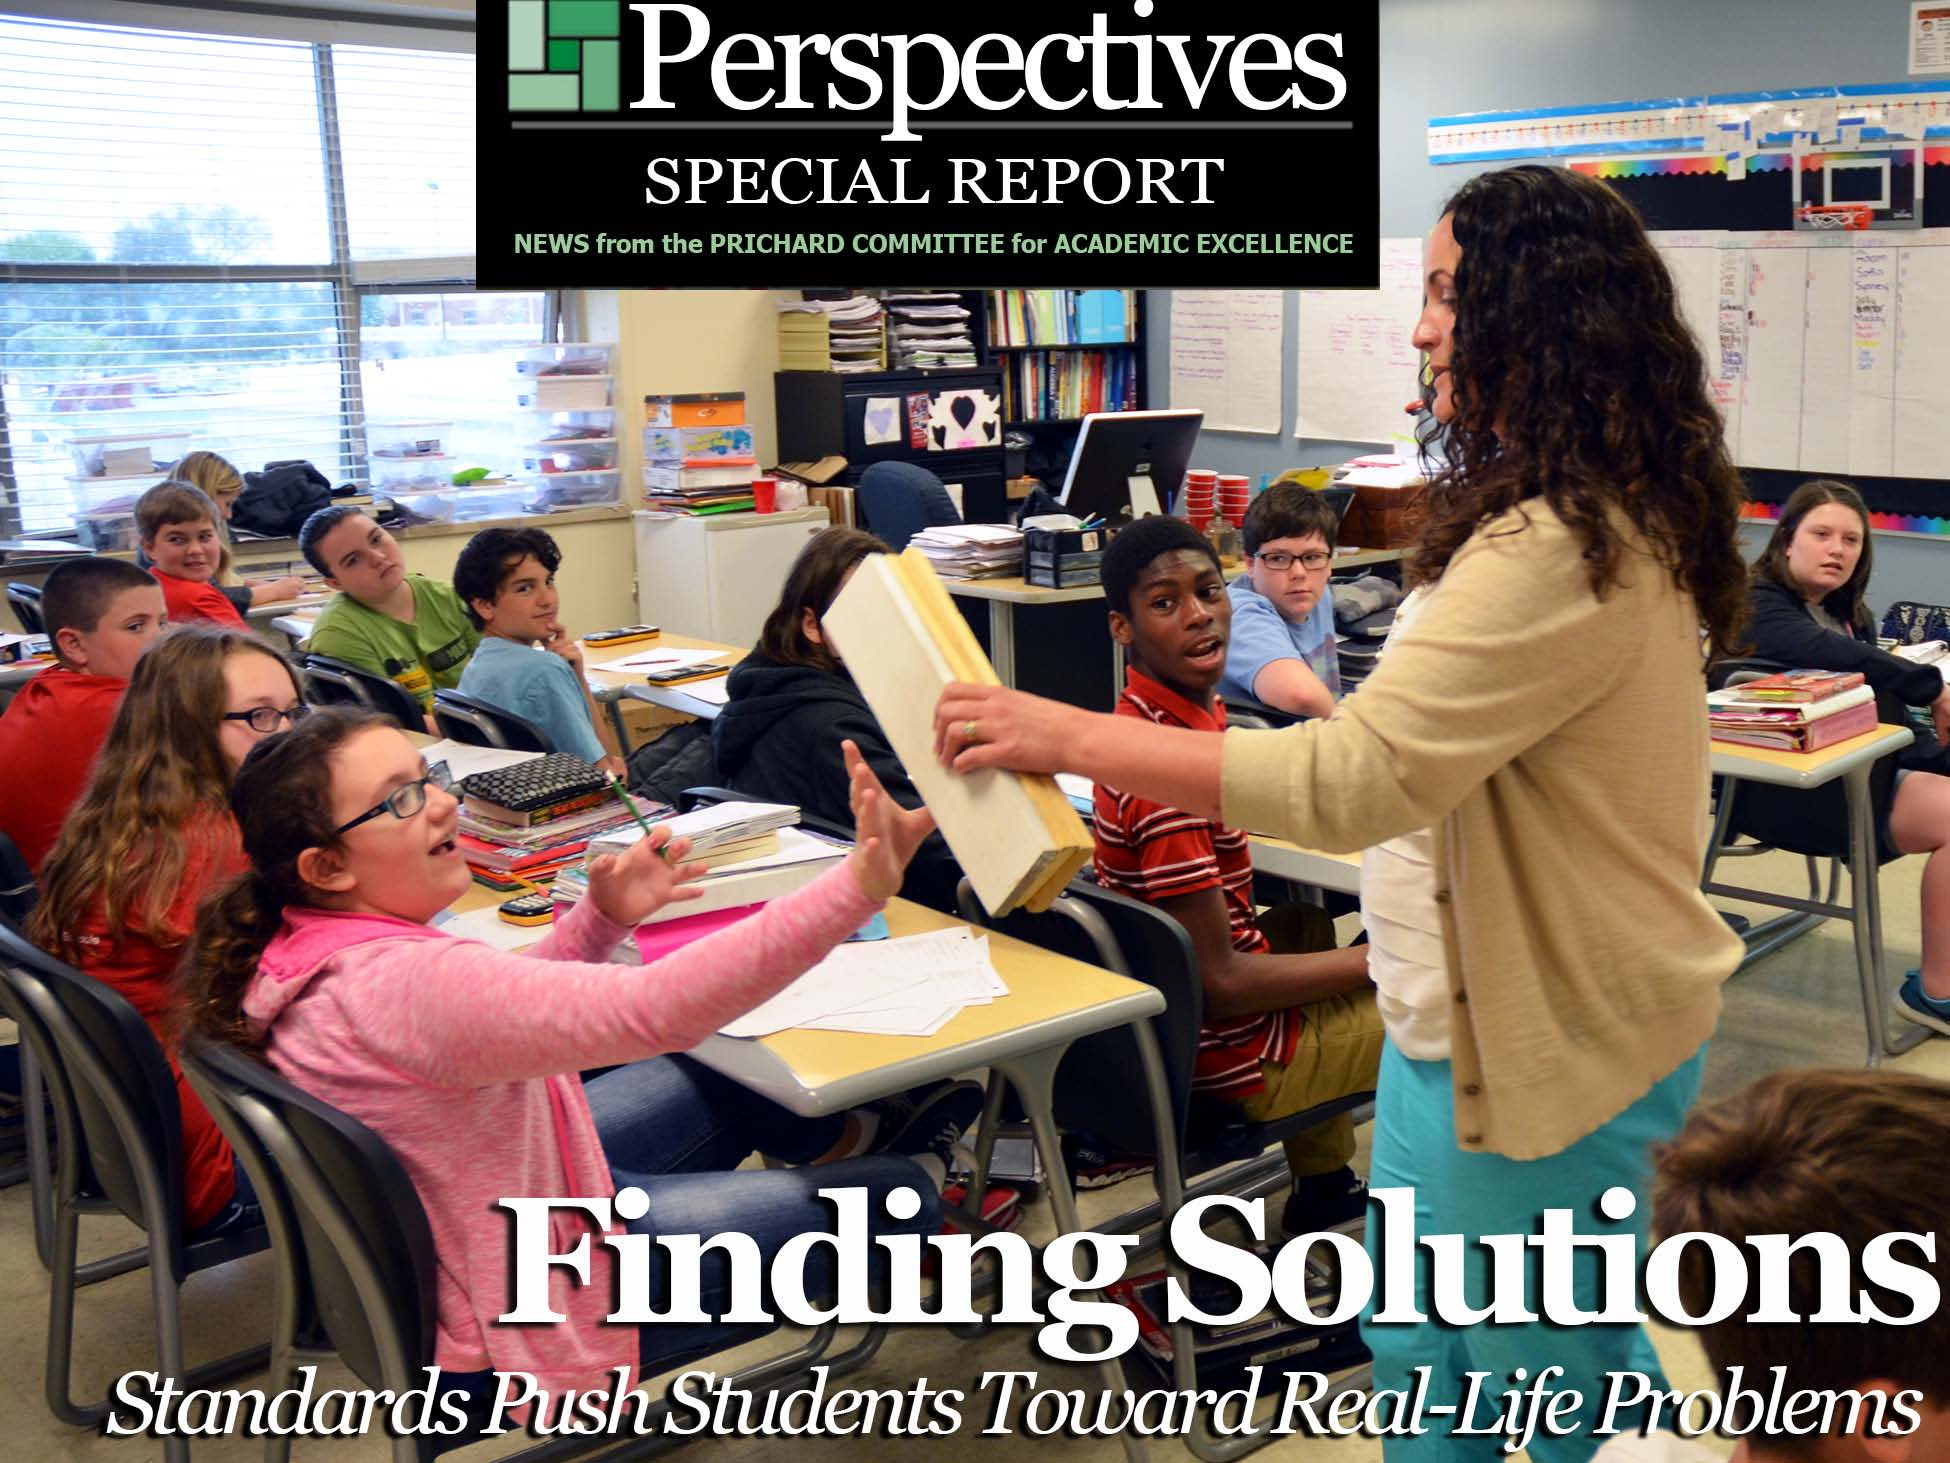 PERSPECTIVE SPECIAL REPORT | Finding Solutions: Standards Push Students Toward Real-Life Problems